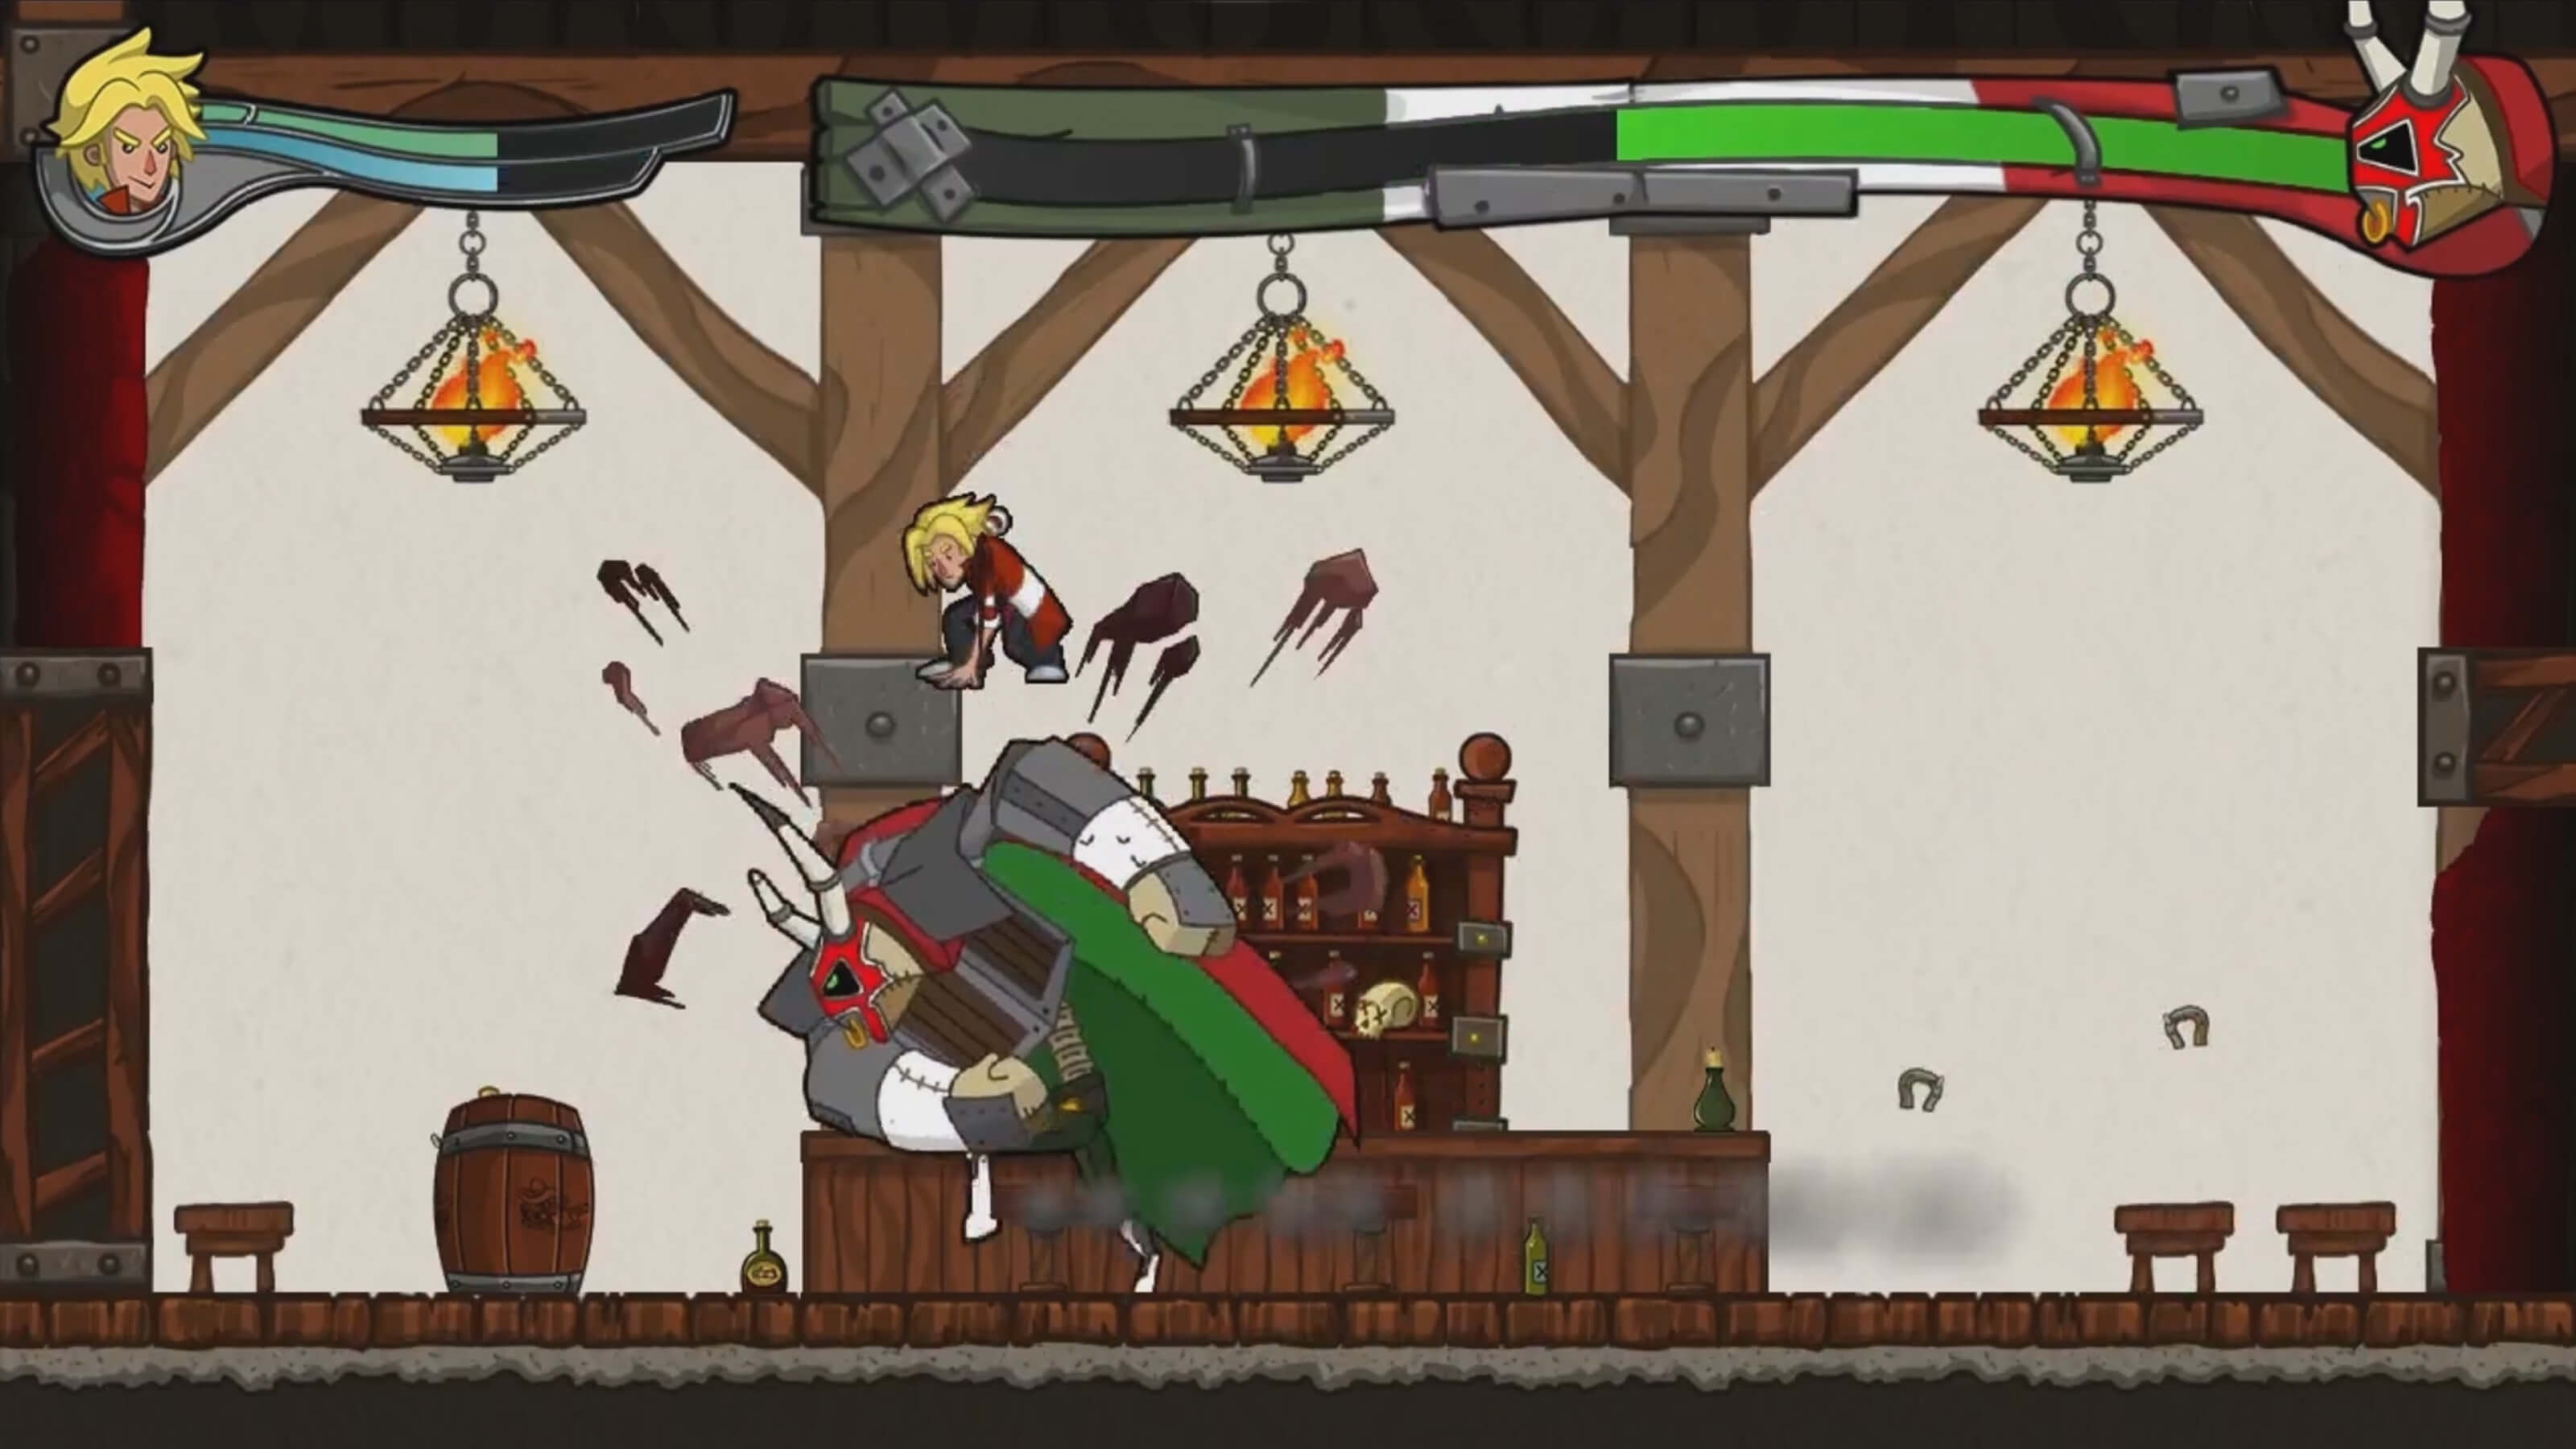 Jero leaps above a charging knight wearing a horned mask in a pub.